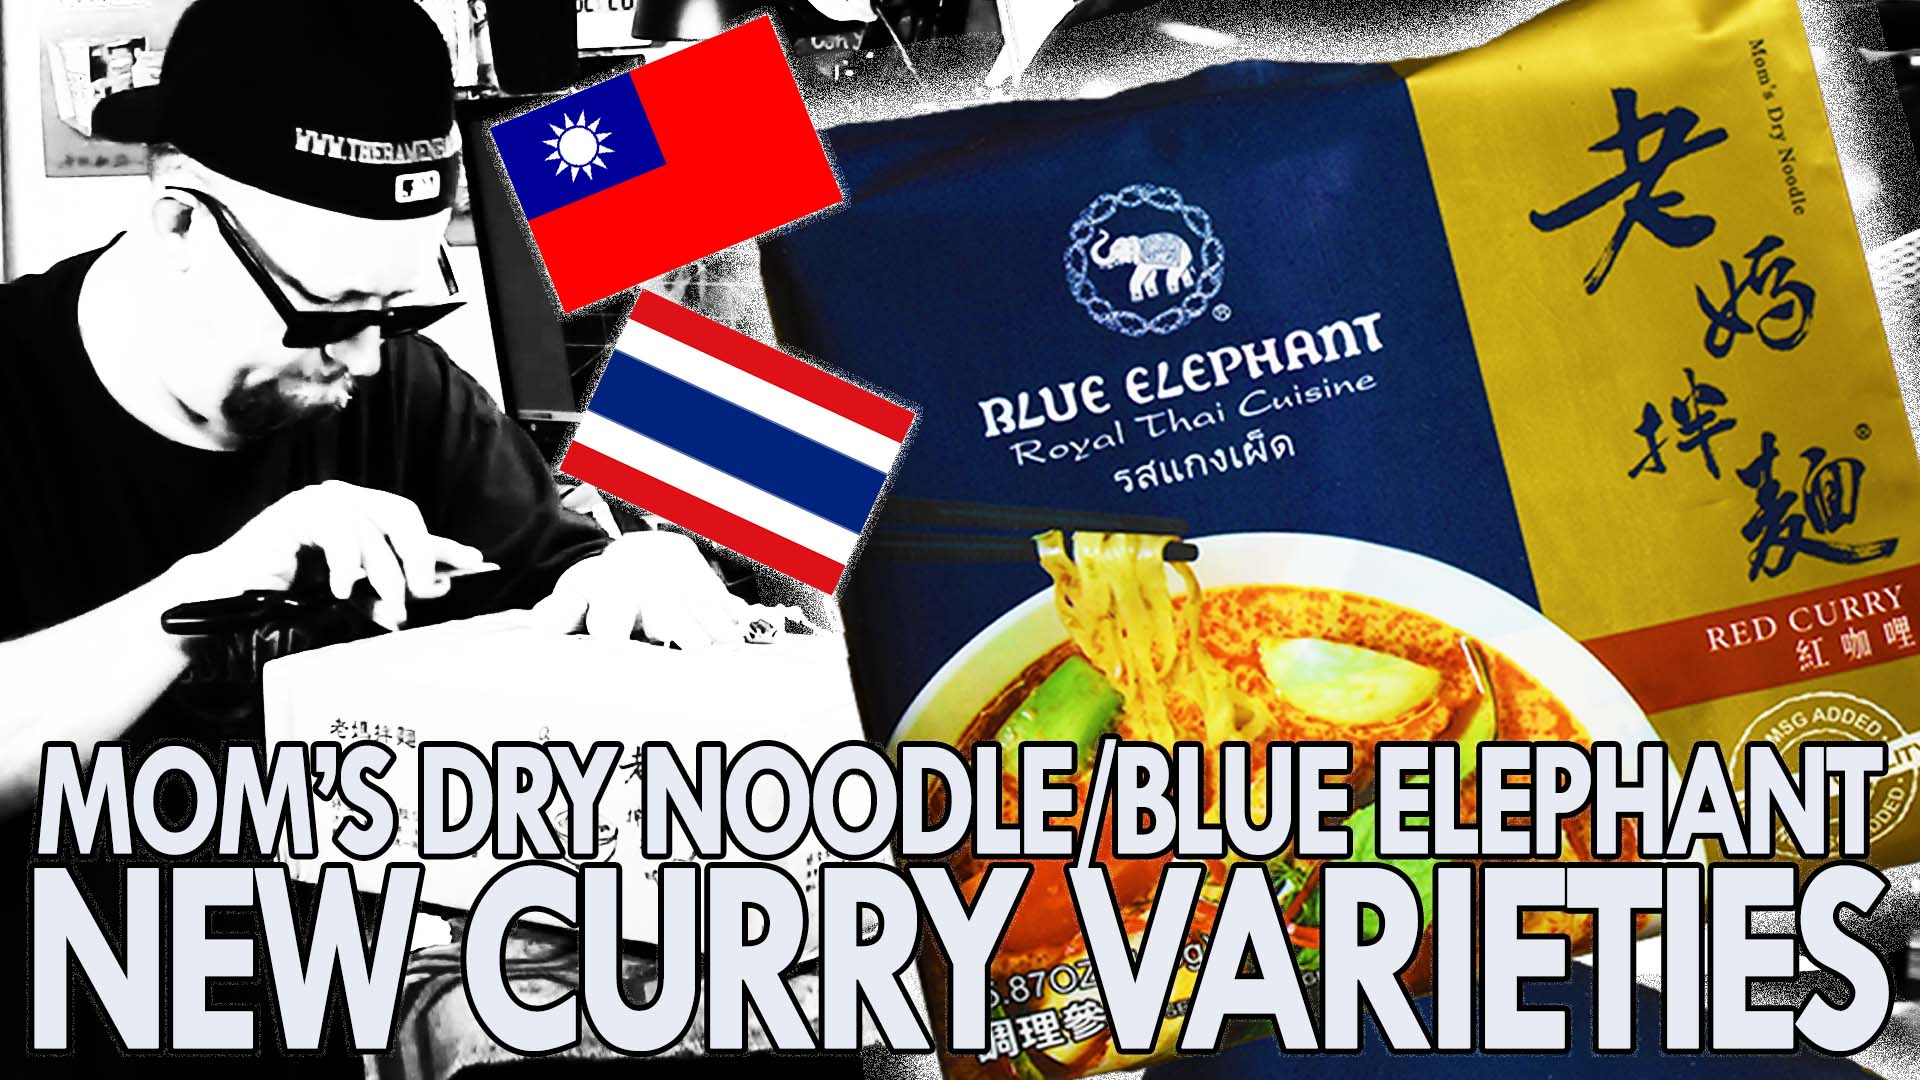 Mom's Dry Noodle / Blue Elephart Curries From Taiwan!